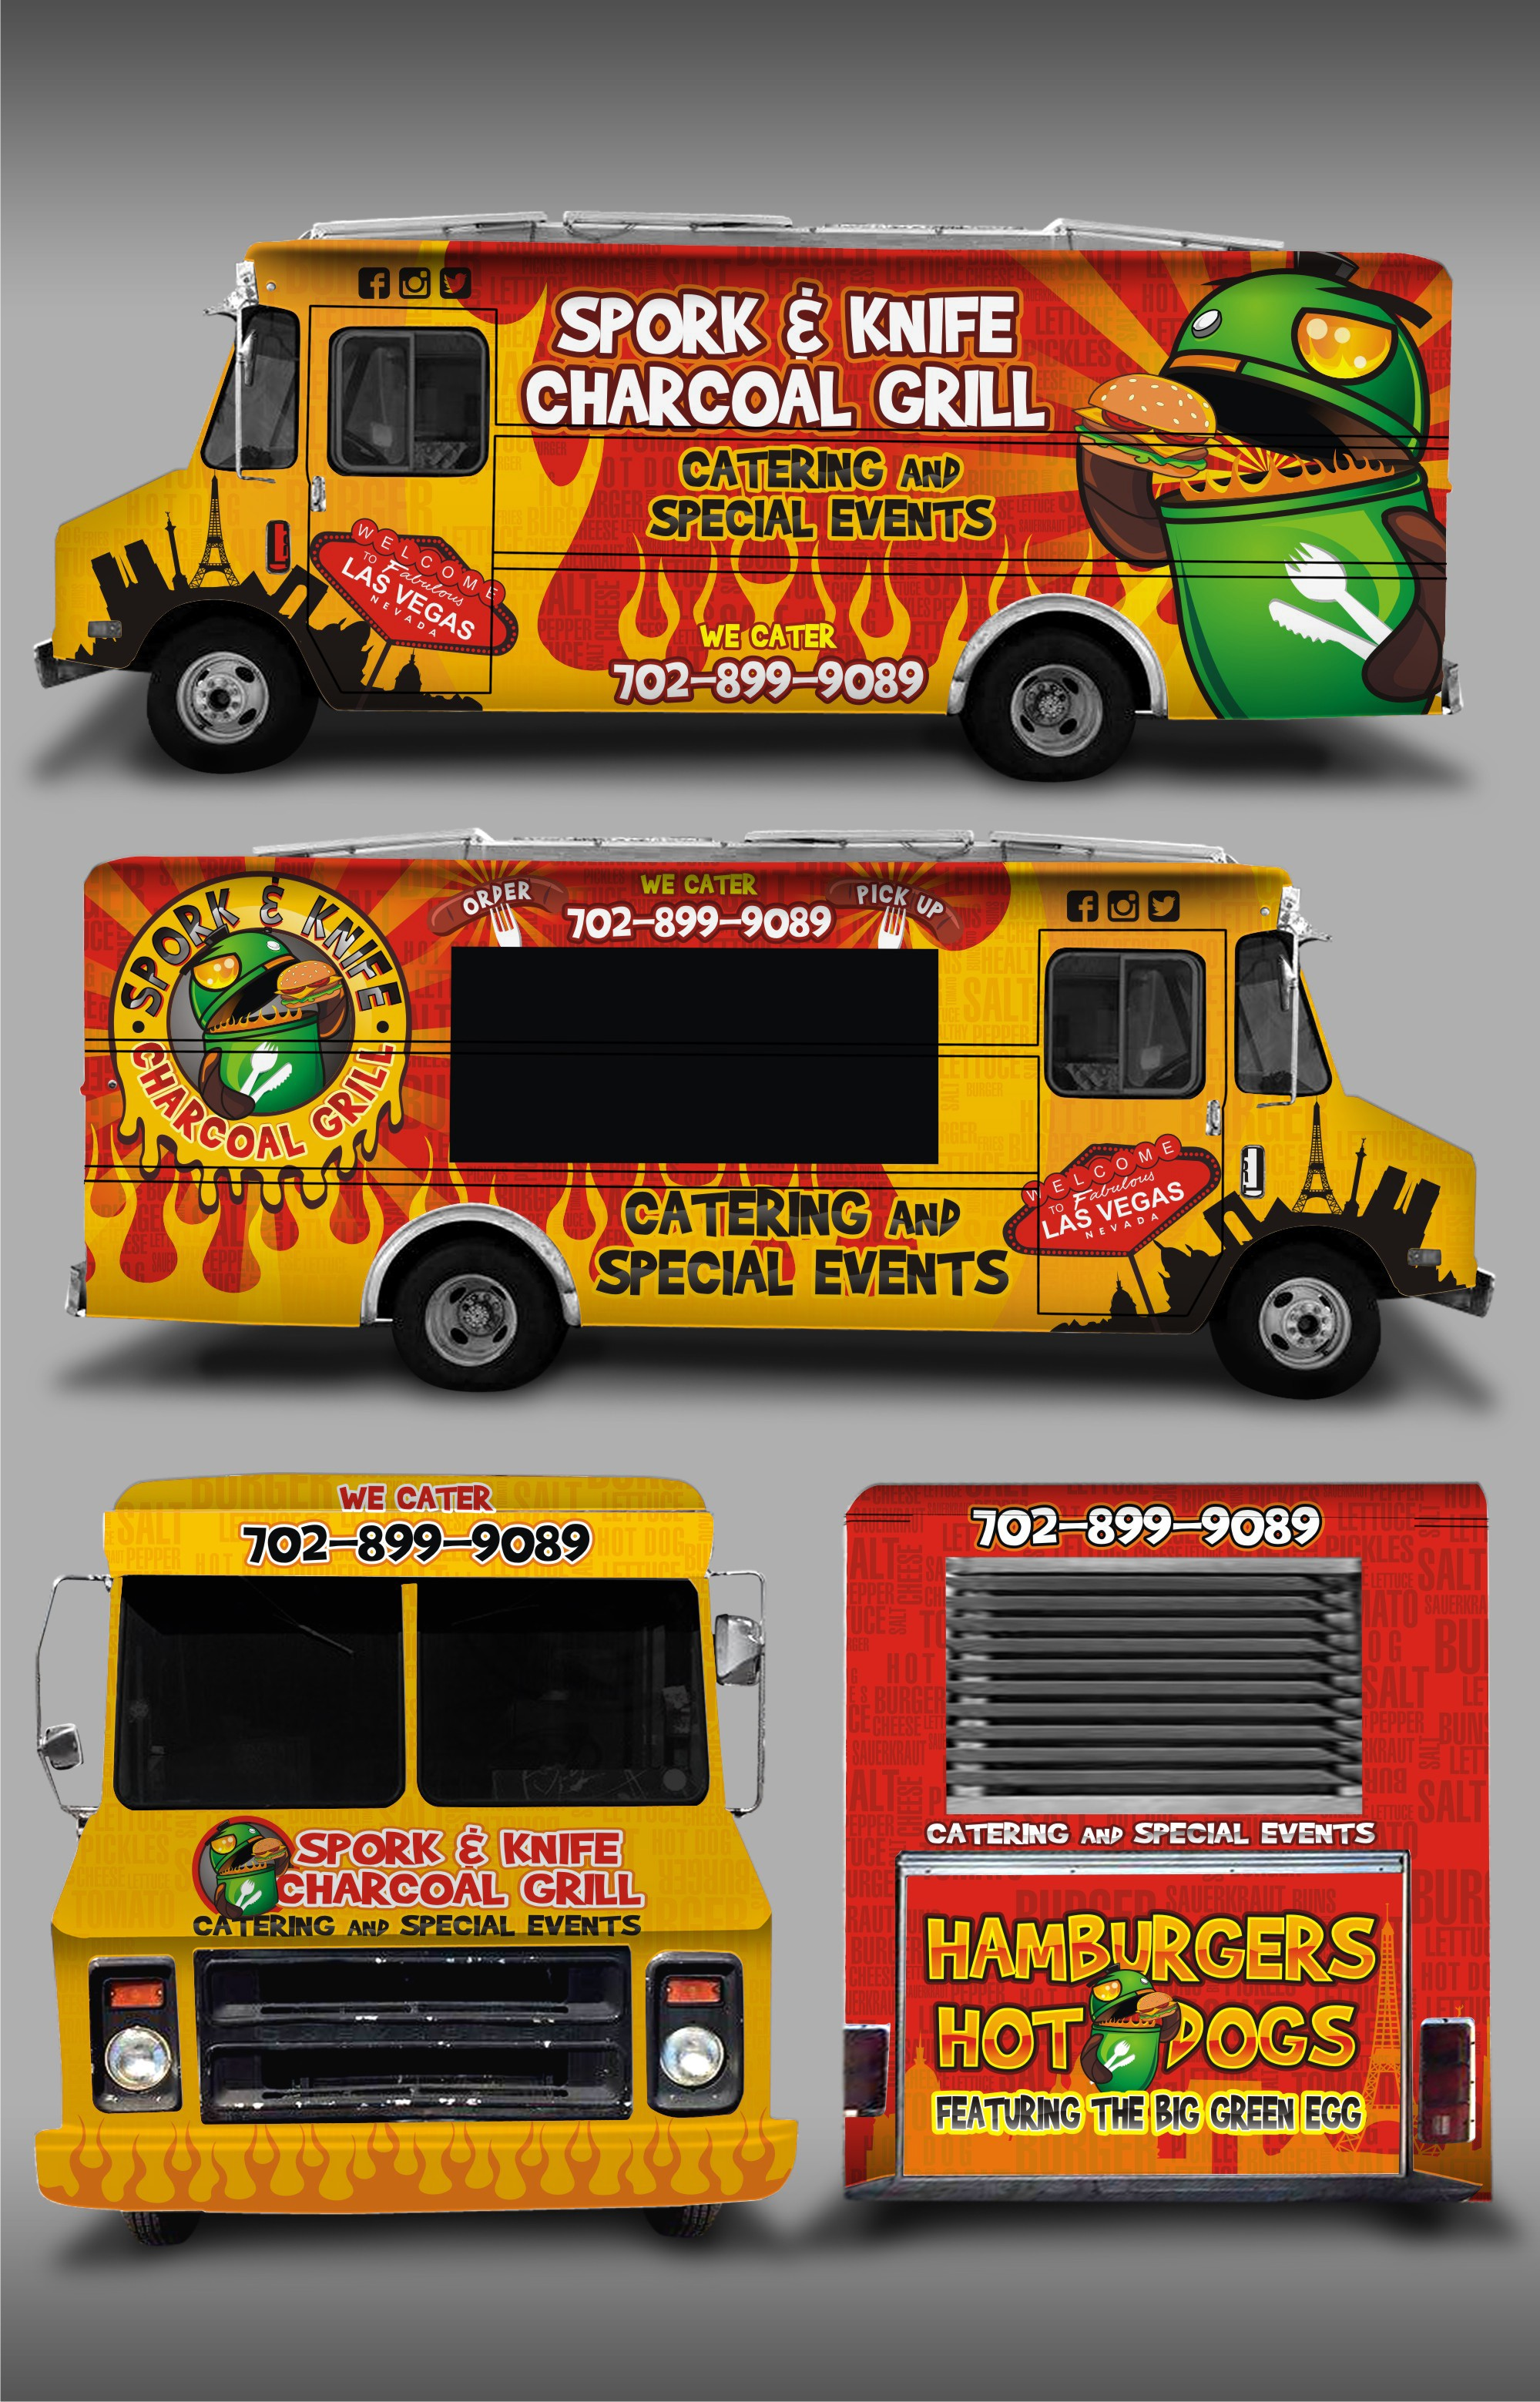 Create a food truck wrap for the Spork & Knife Charcoal Grill